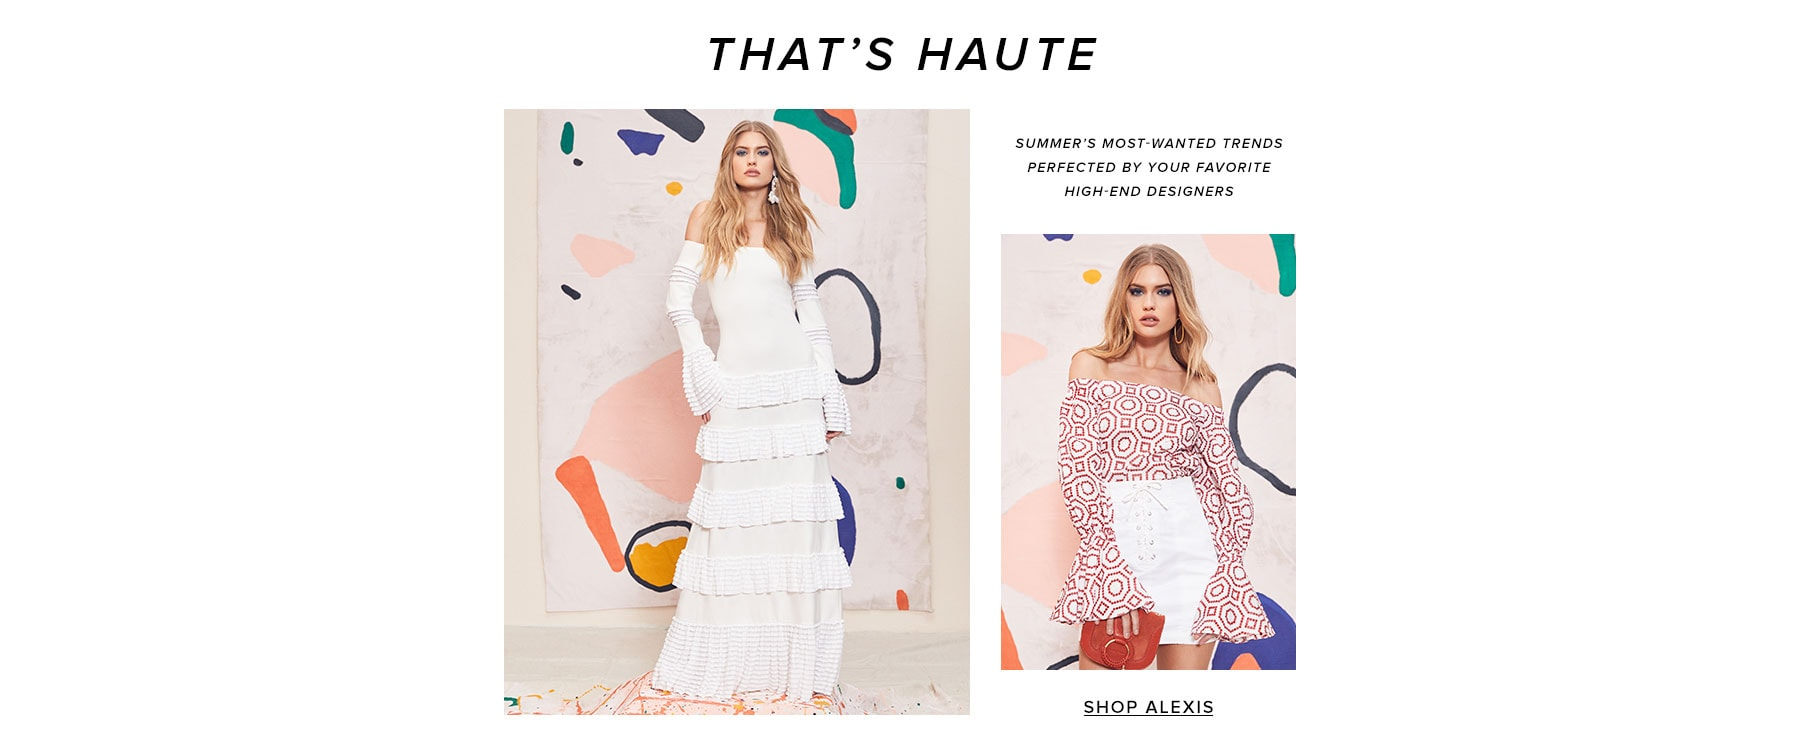 That's Haute. Summer's most-wanted trends perfected by your favorite high-end designers. Shop Alexis.